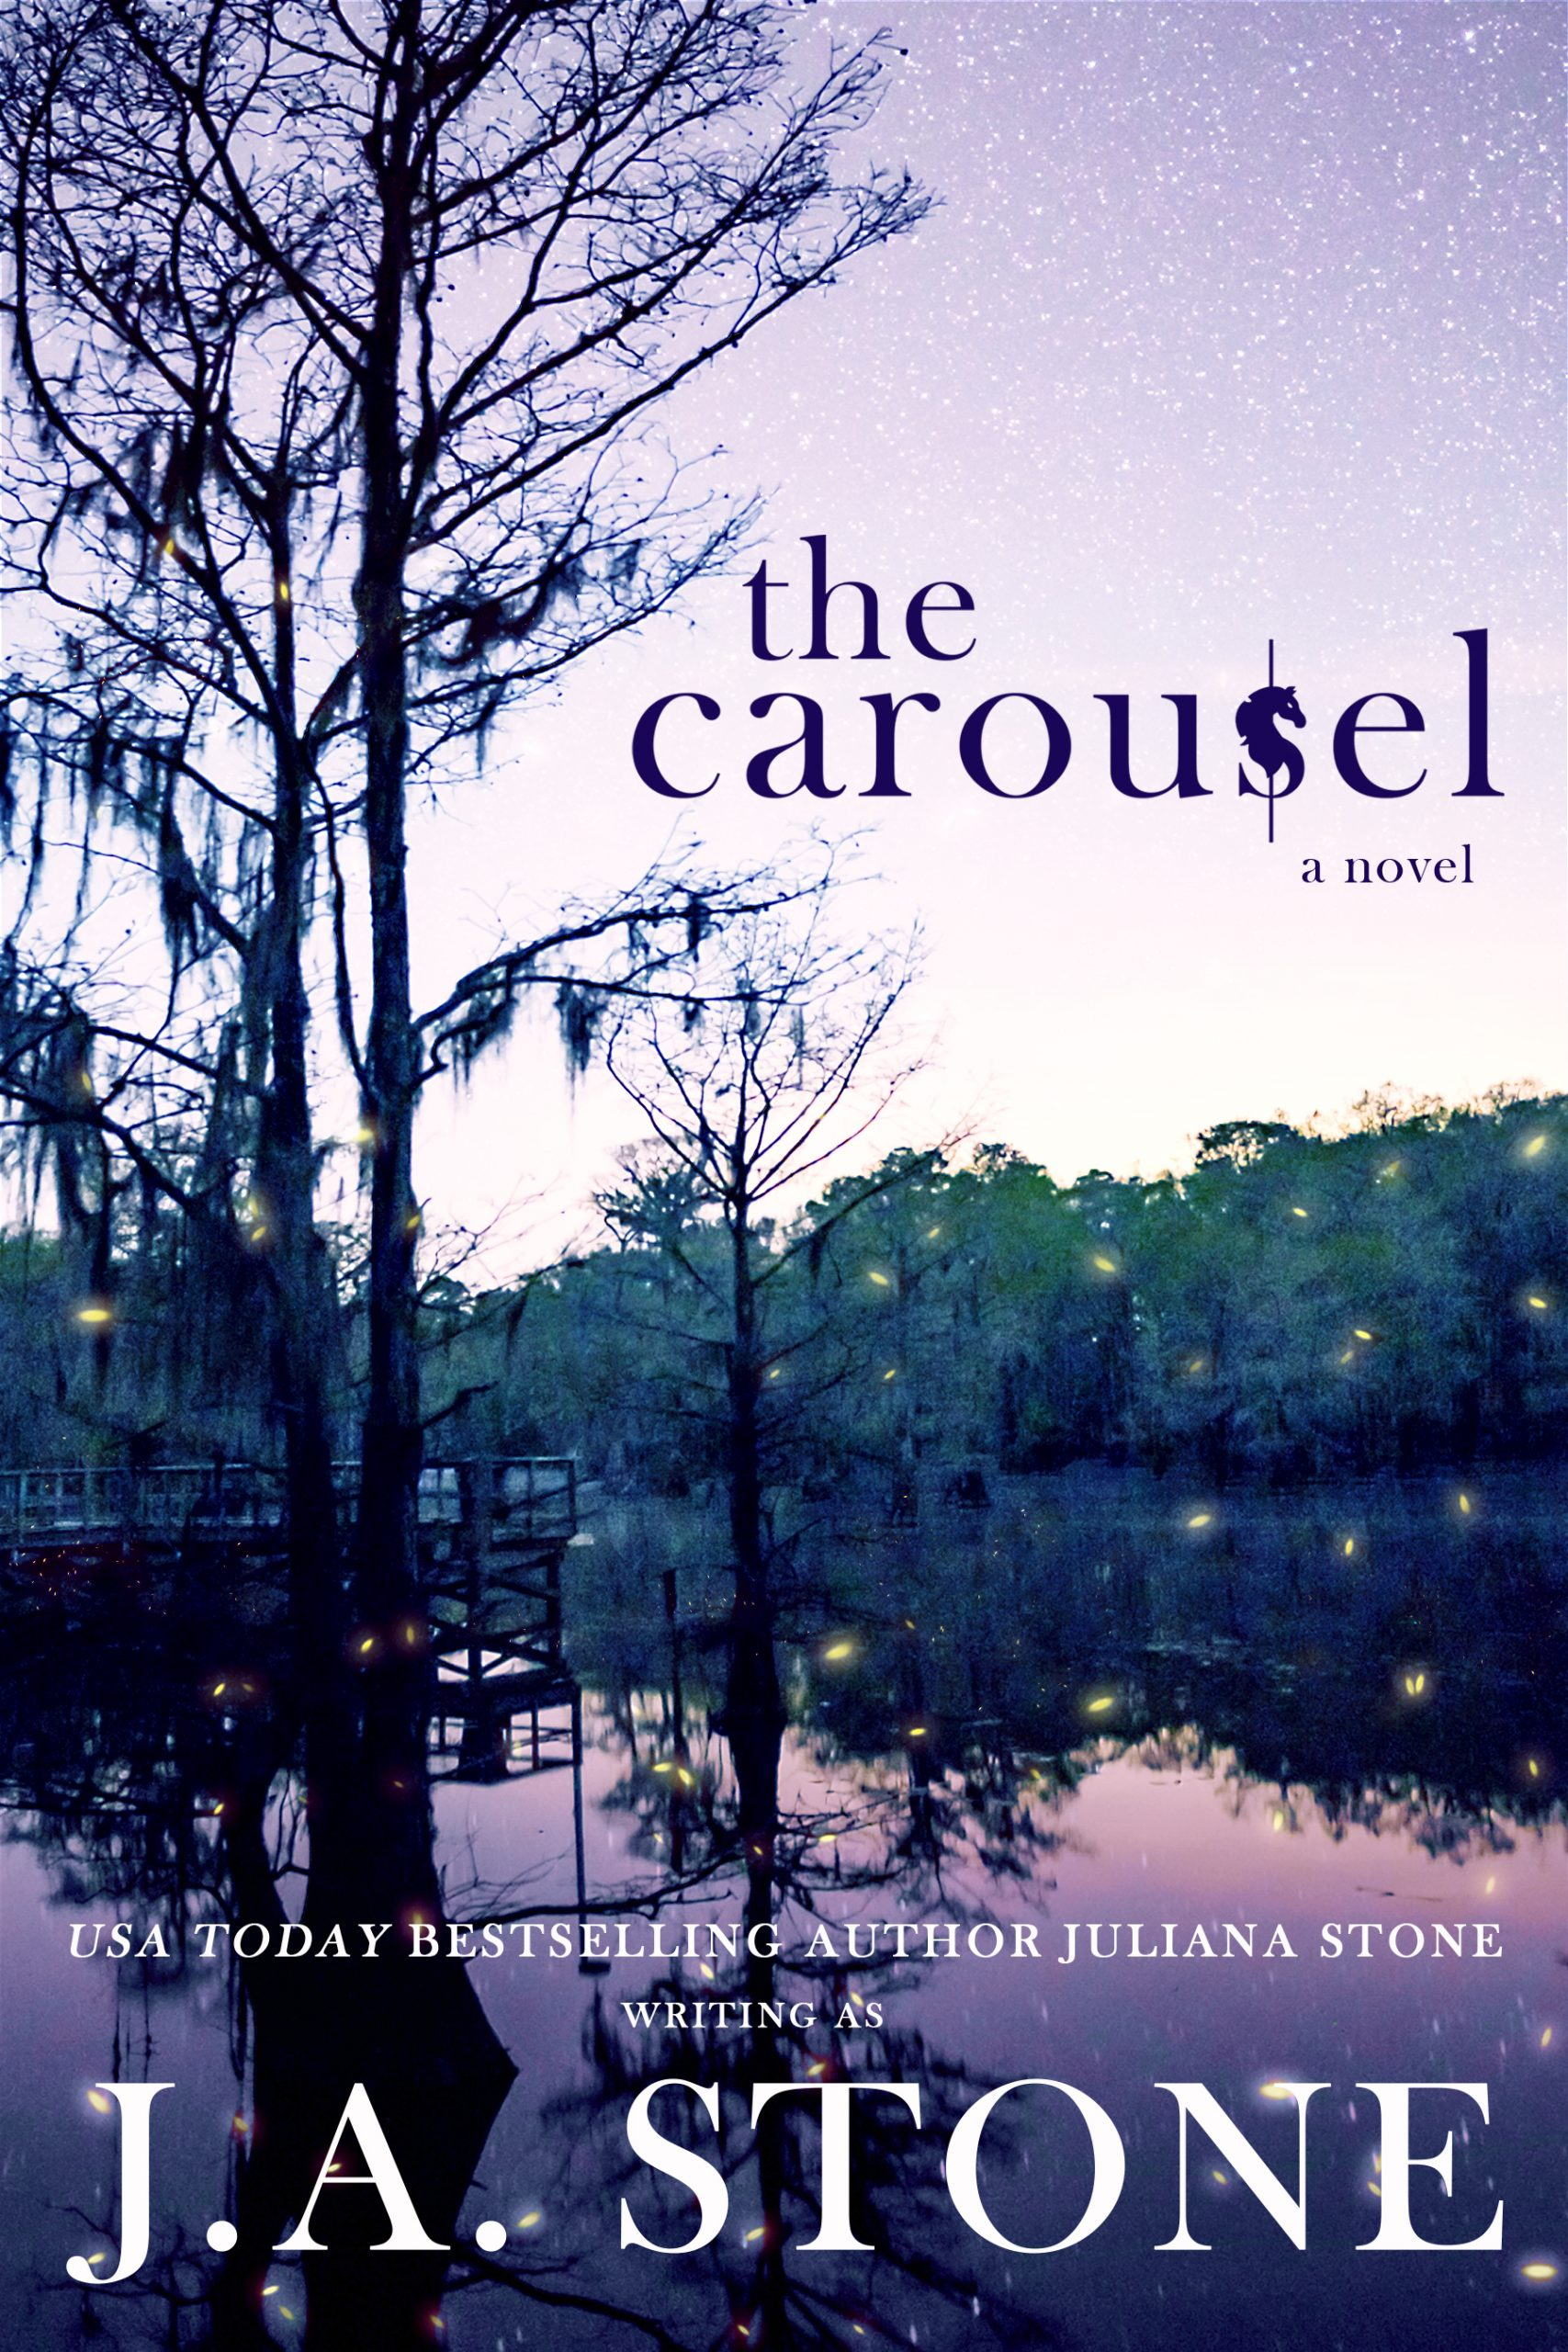 The Carousel by Juliana Stone